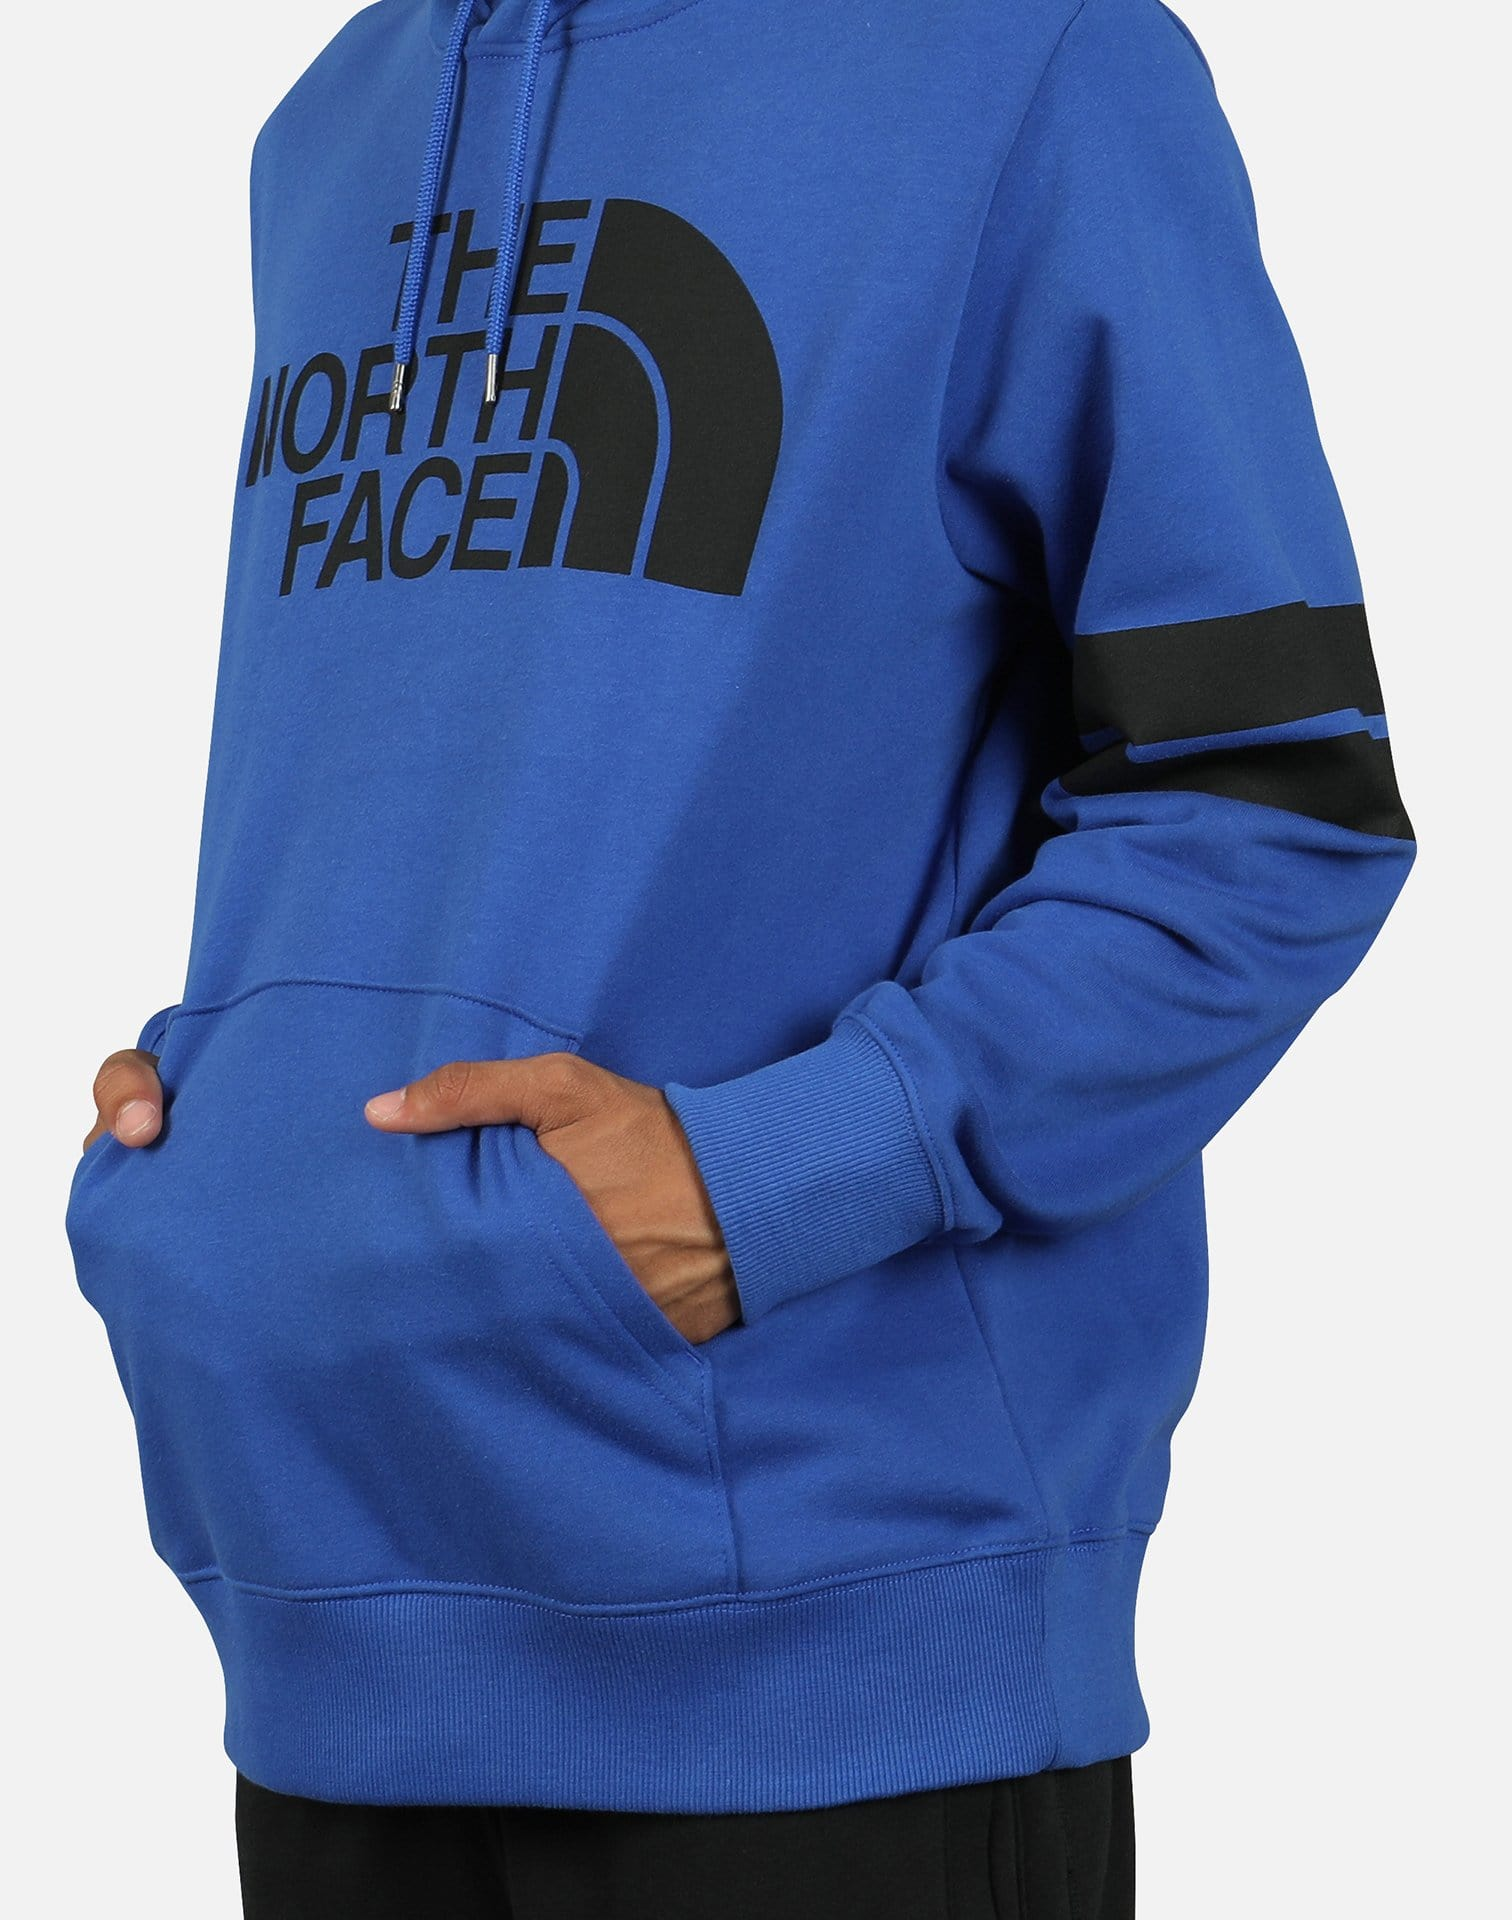 The North Face Men's Collegiate Pullover Hoodie